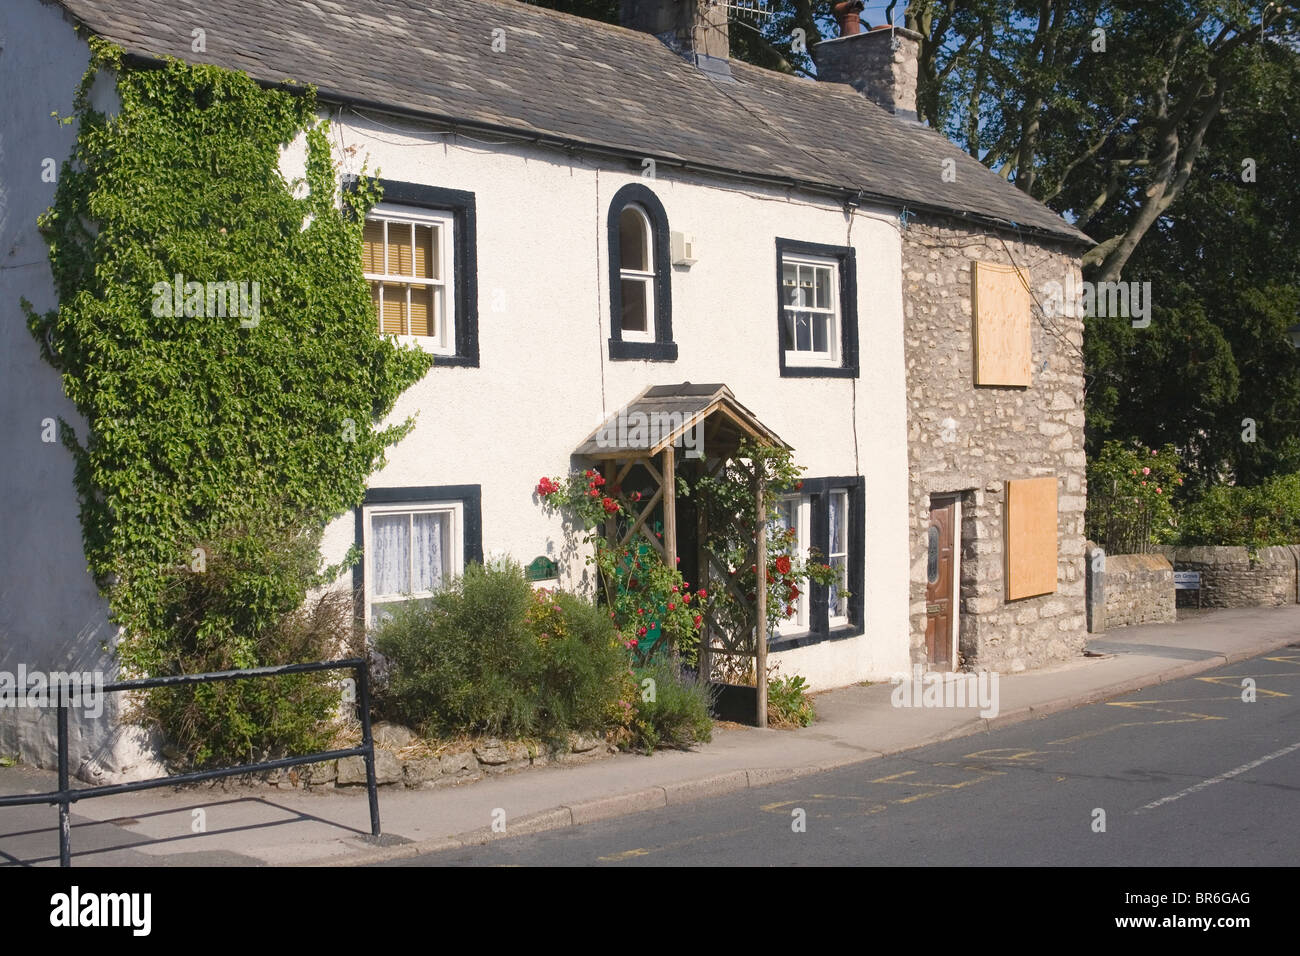 Typical English country cottage in the village of Warton, Lancashire, England. - Stock Image